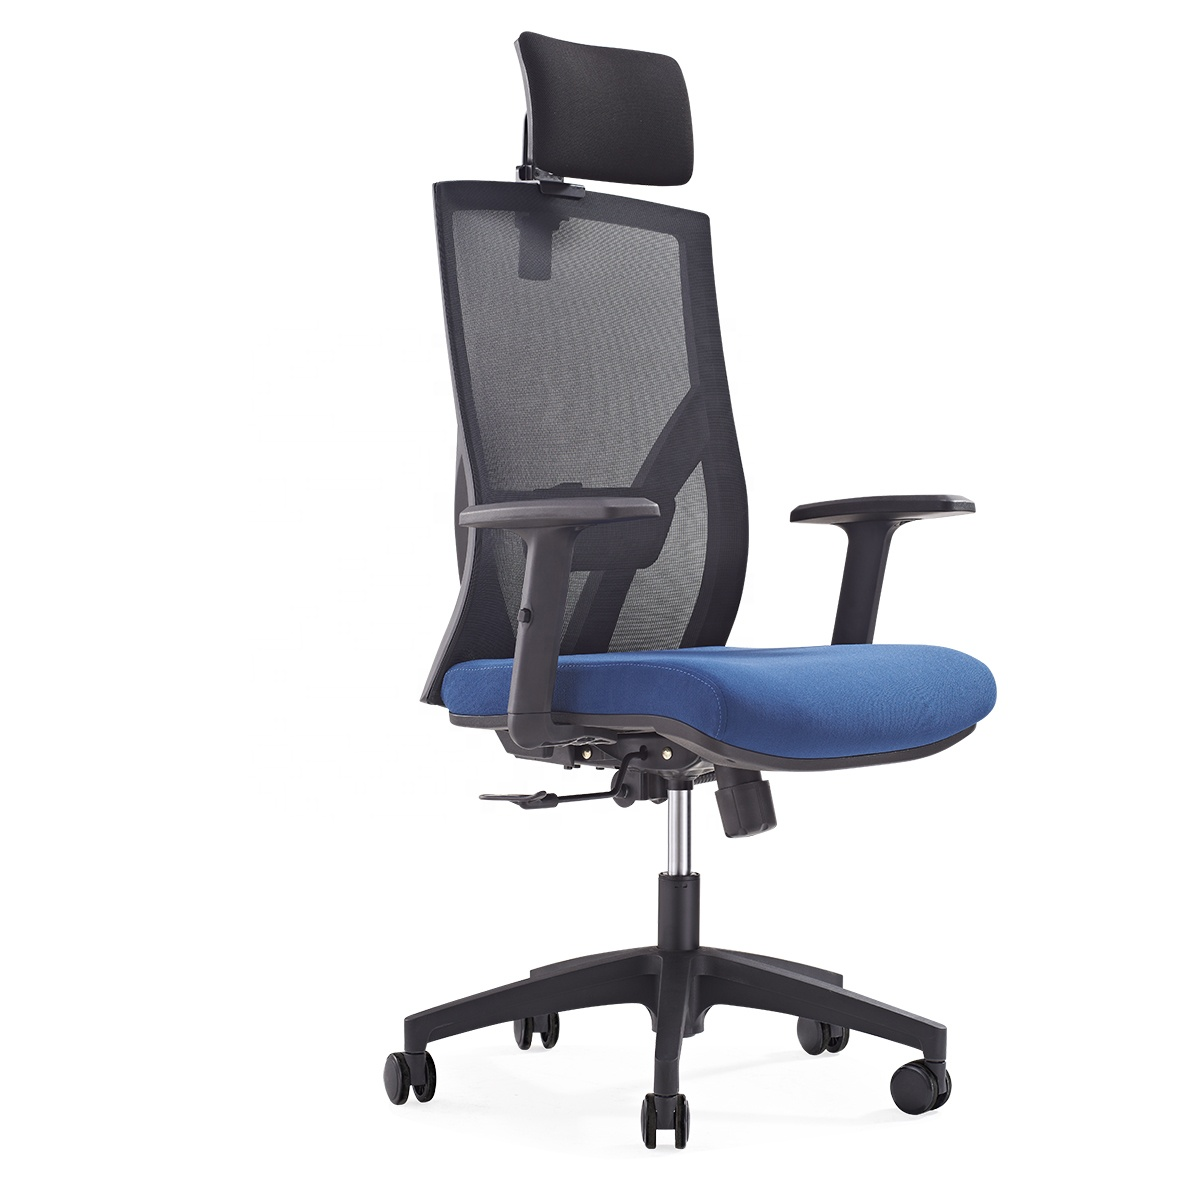 608A Modern comfortable conference meeting room black ergonomic luxury modern mesh black executive office chair